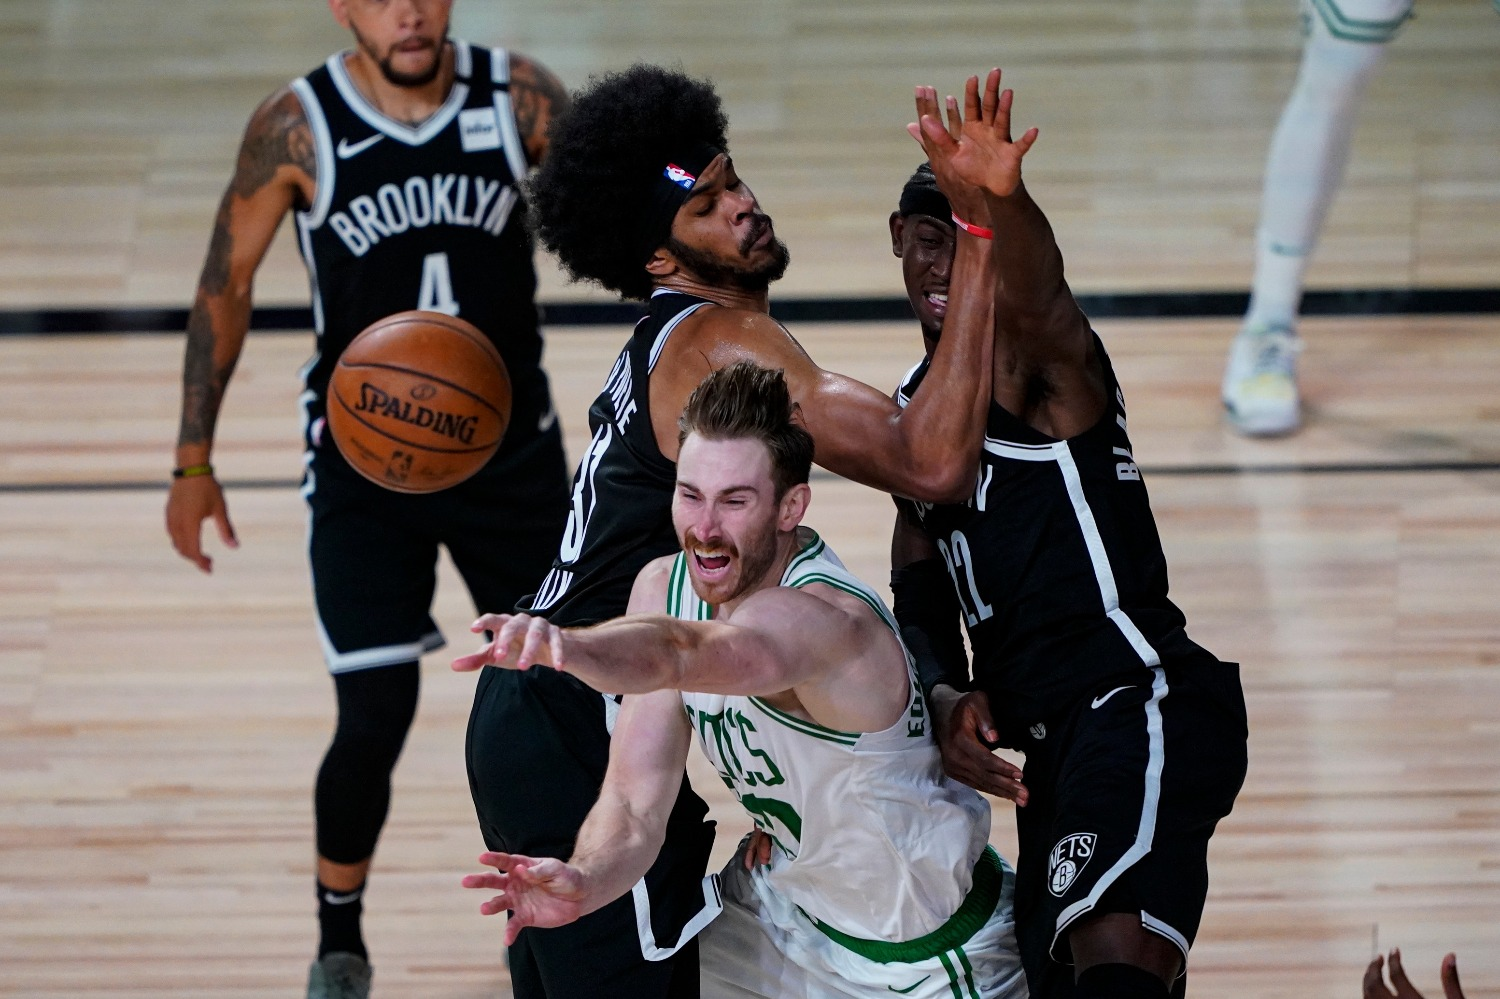 The Boston Celtics will be without Gordon Hayward for four weeks as they try to capture an NBA title.